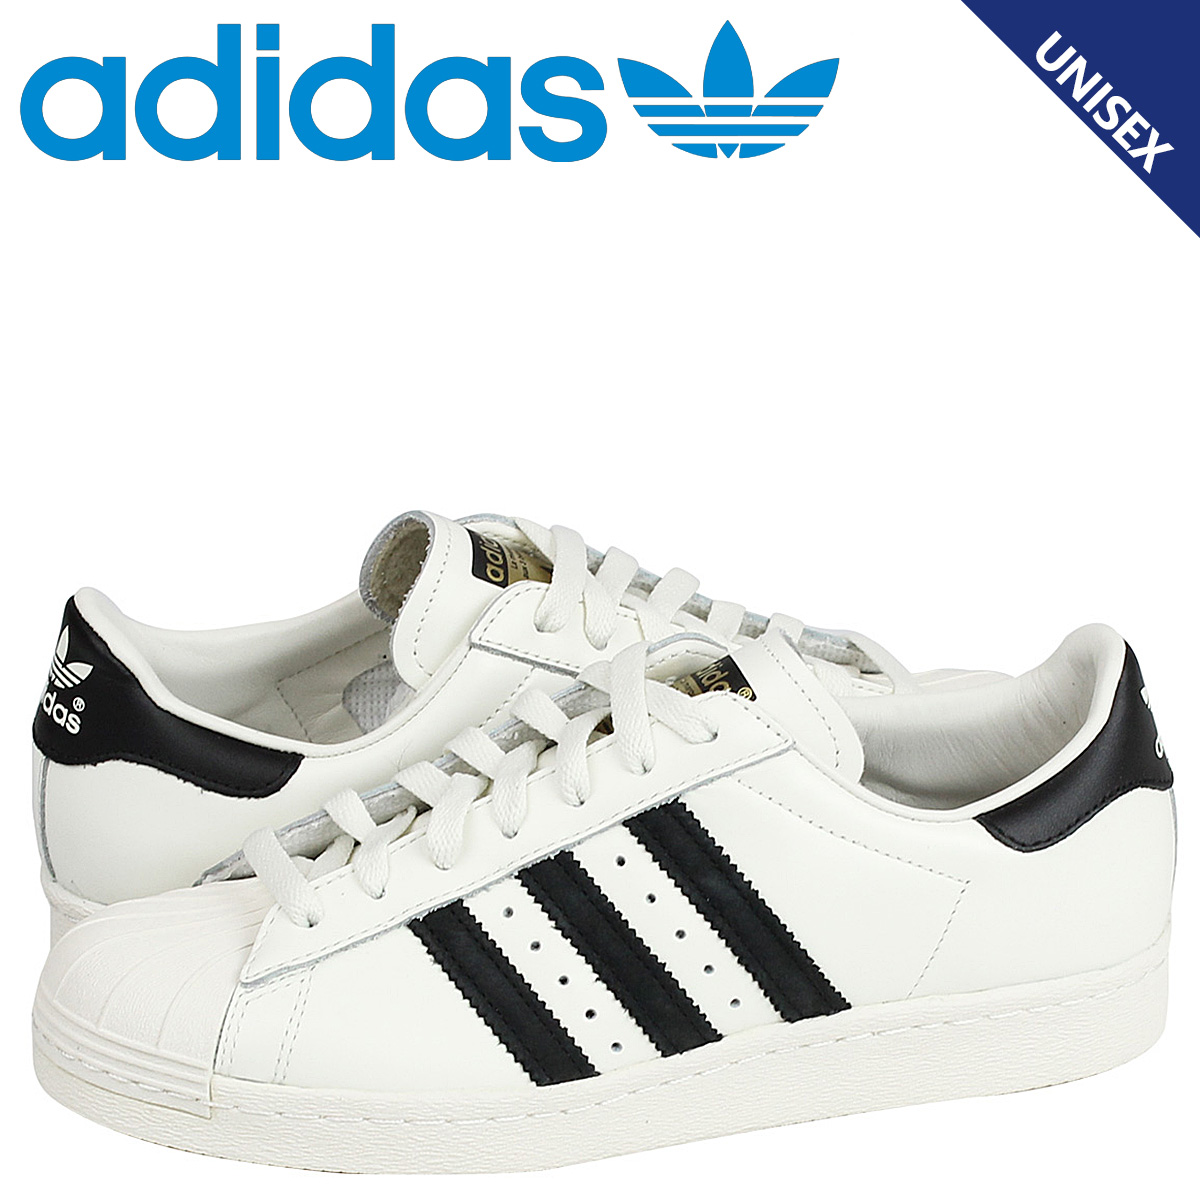 Whats up Sports: Adidas adidas Originals SUPERSTAR 80s AC Adidas Sports: originals 2c8aa2